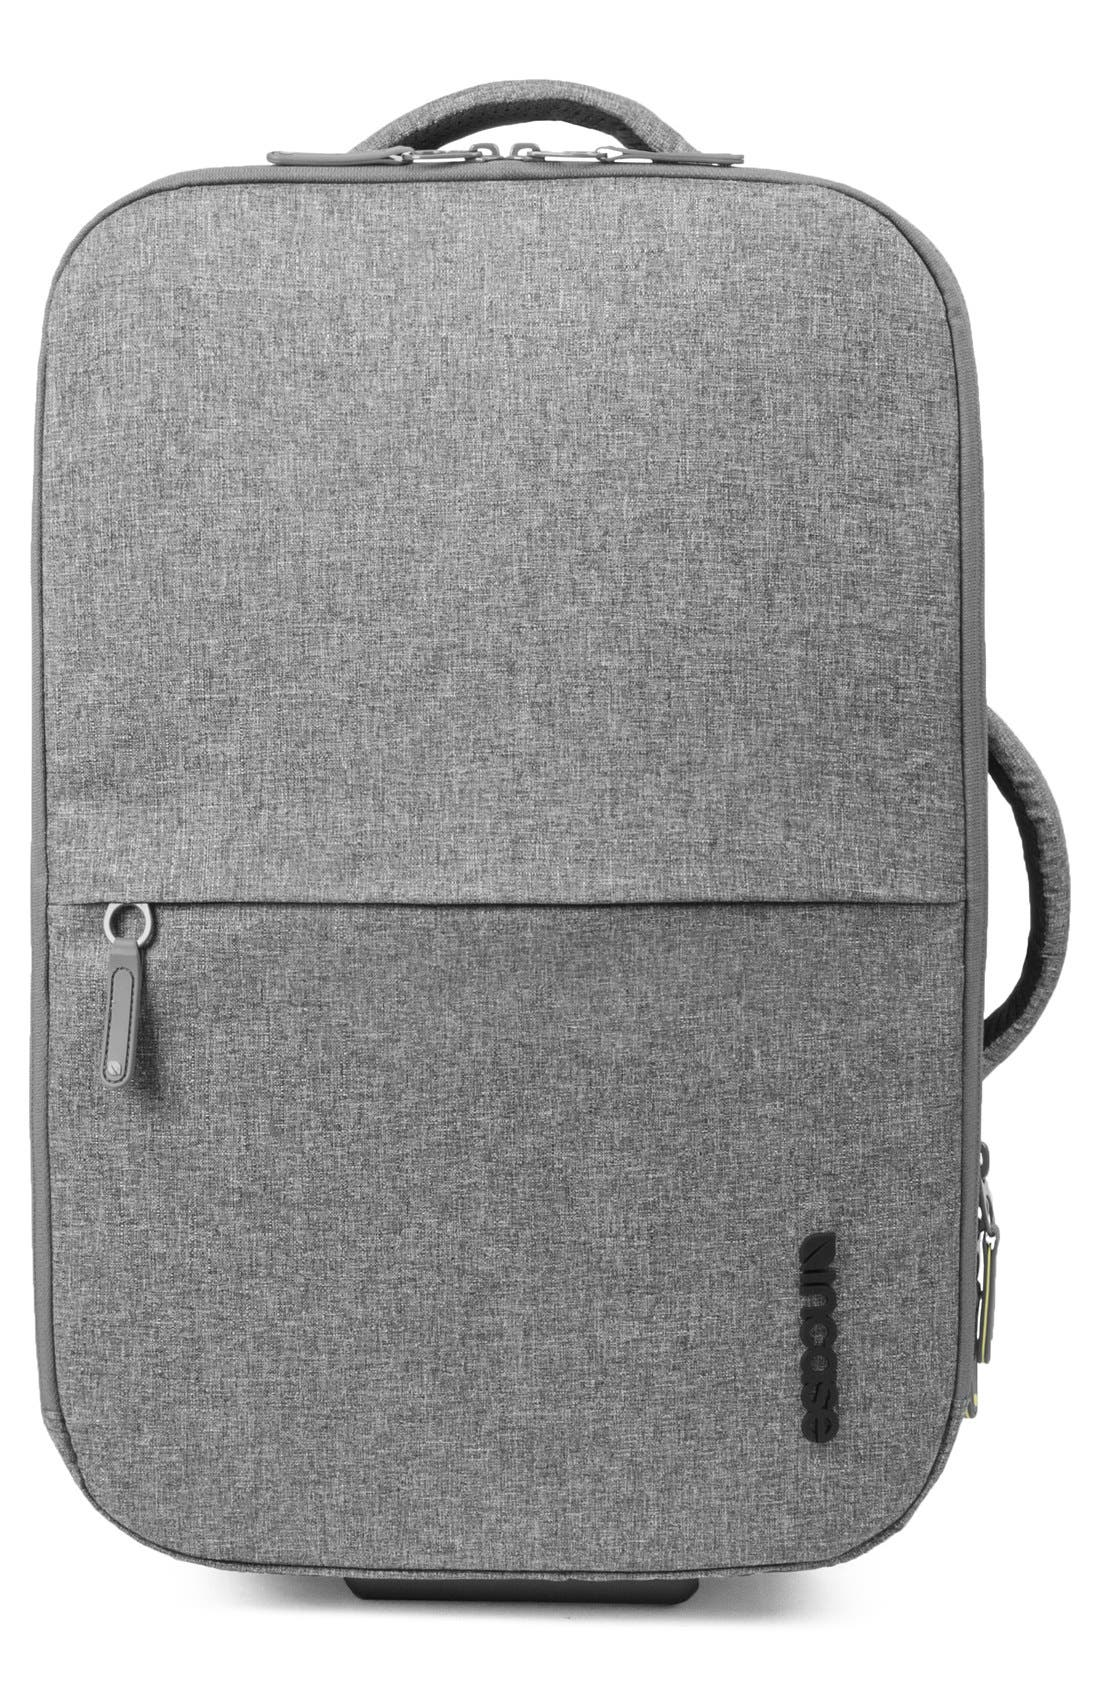 INCASE DESIGNS EO Wheeled Suitcase